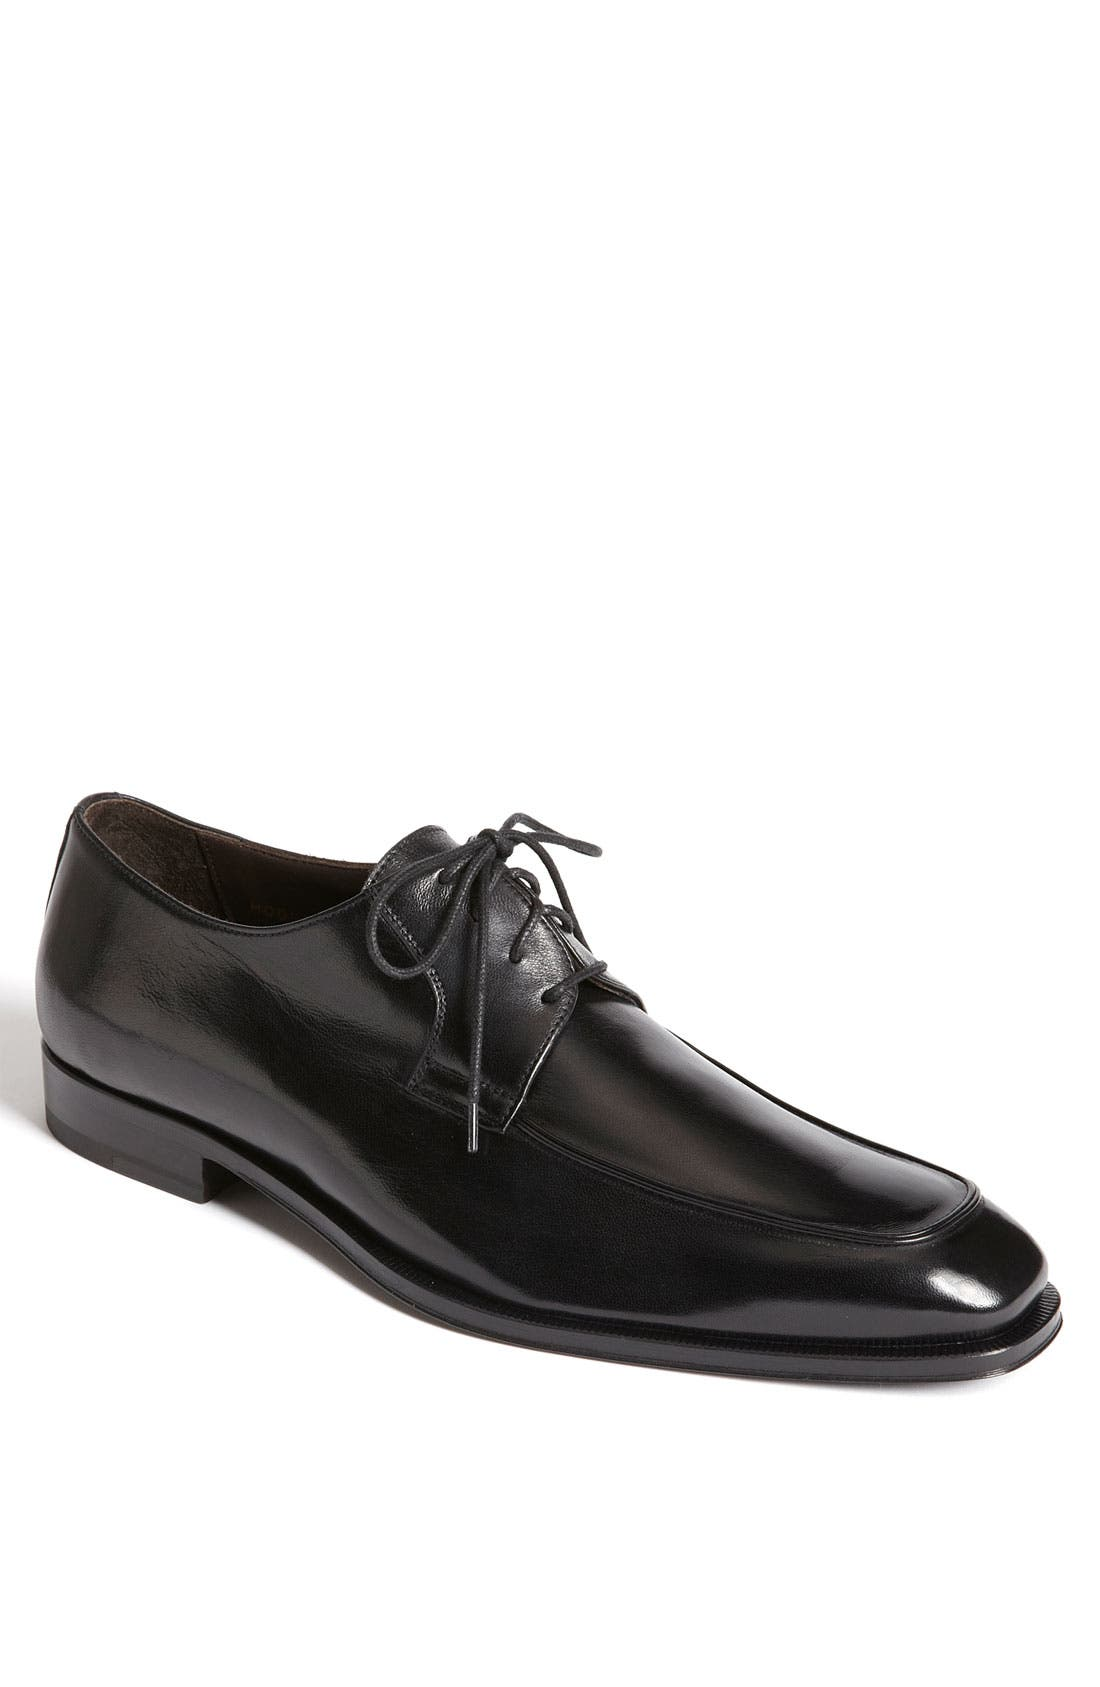 Alternate Image 1 Selected - Bruno Magli 'Maccino' Apron Toe Oxford